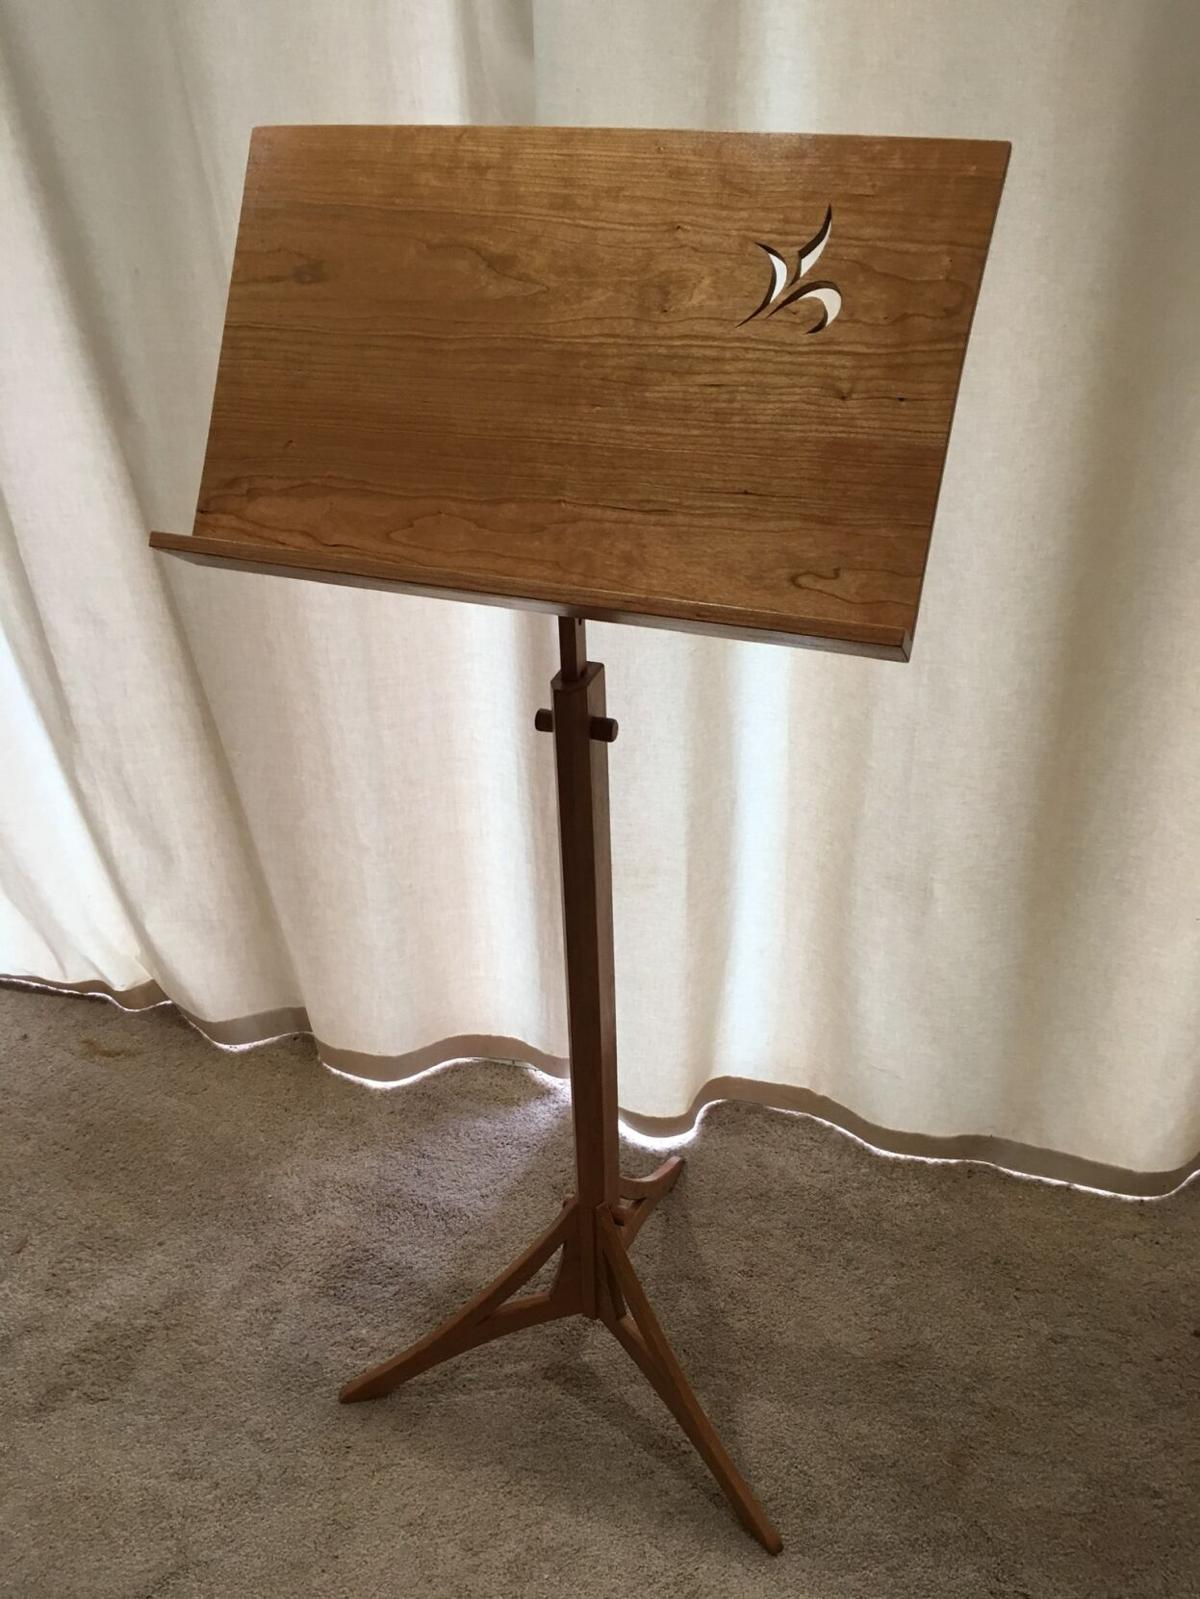 Music stand by R. Michael Hardy